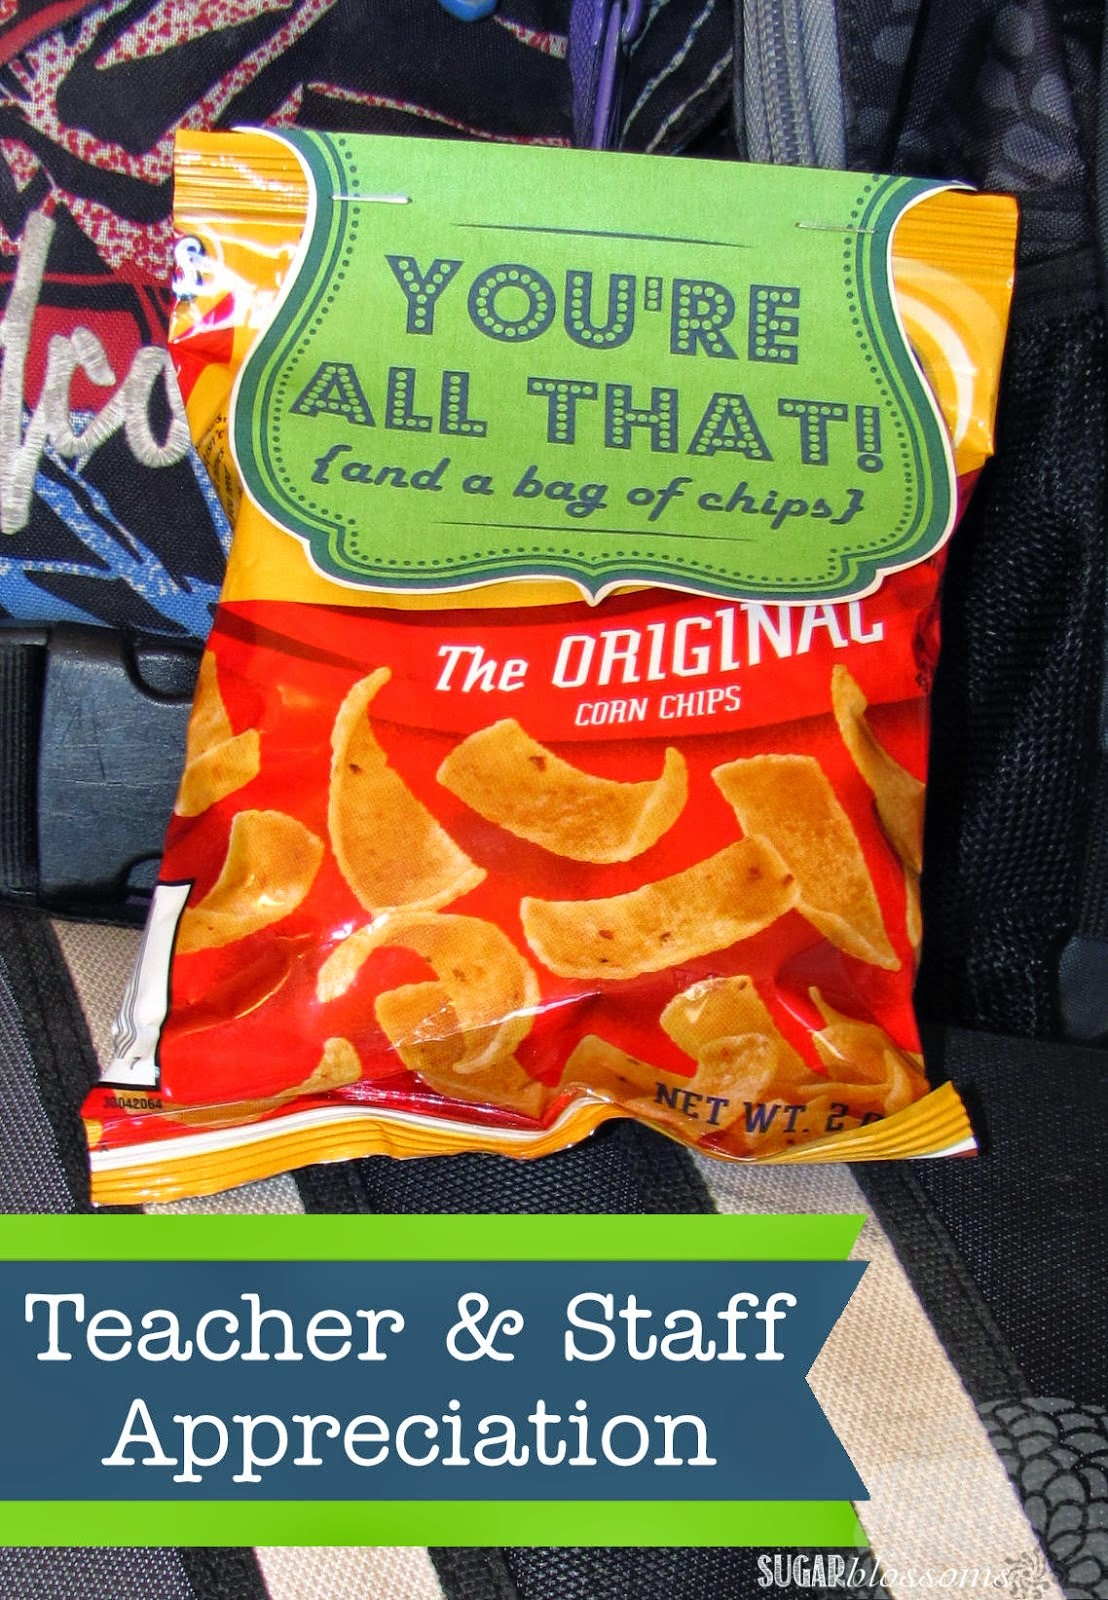 http://sweetsugarblossoms.blogspot.com/2014/05/teacher-staff-appreciation-printable_19.html